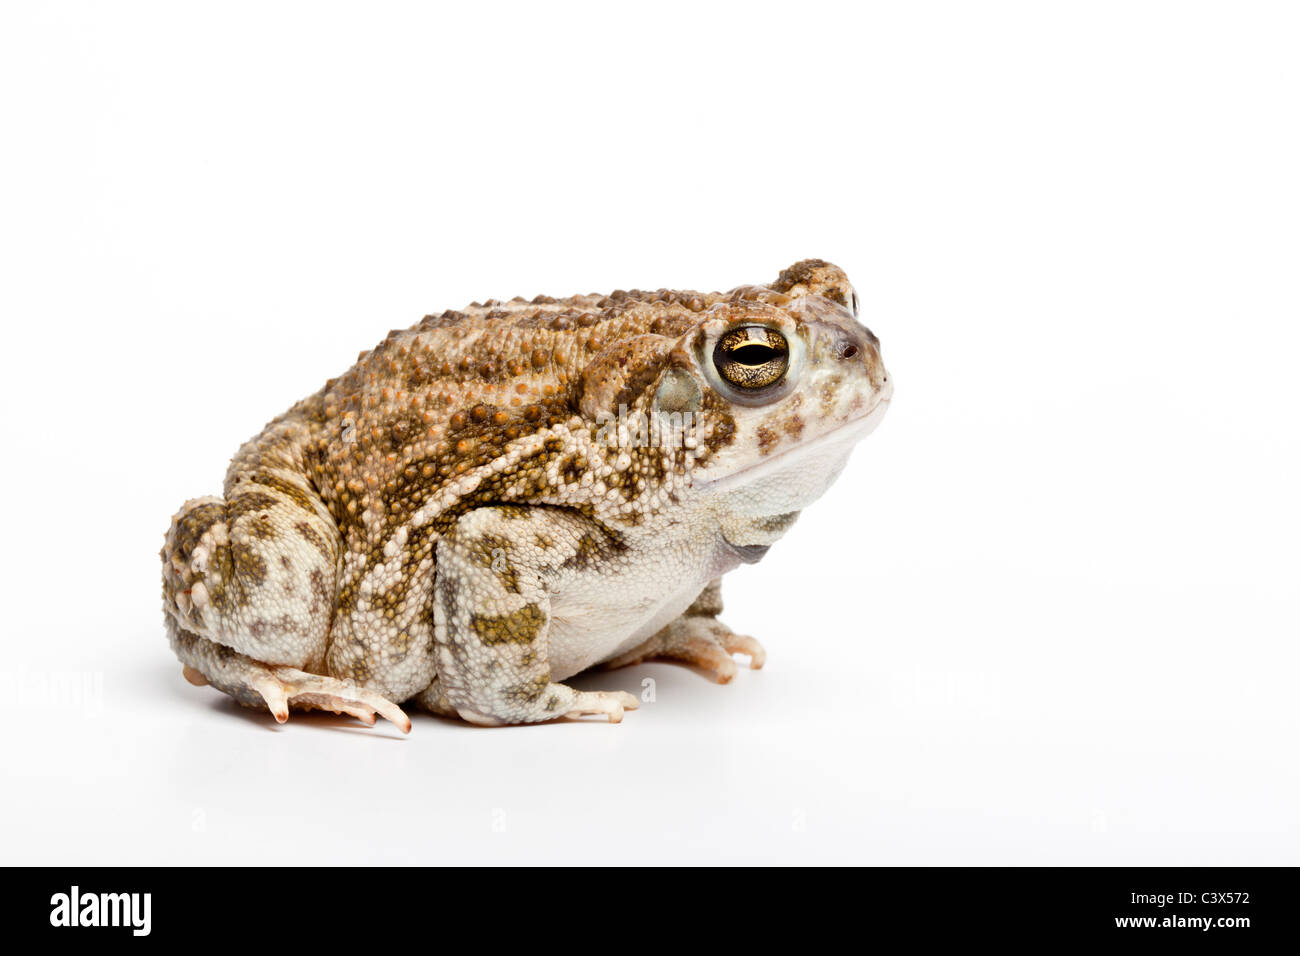 Great Plains toad, Anaxyrus cognatus, formerly Bufo cognatus, North America on white background - Stock Image